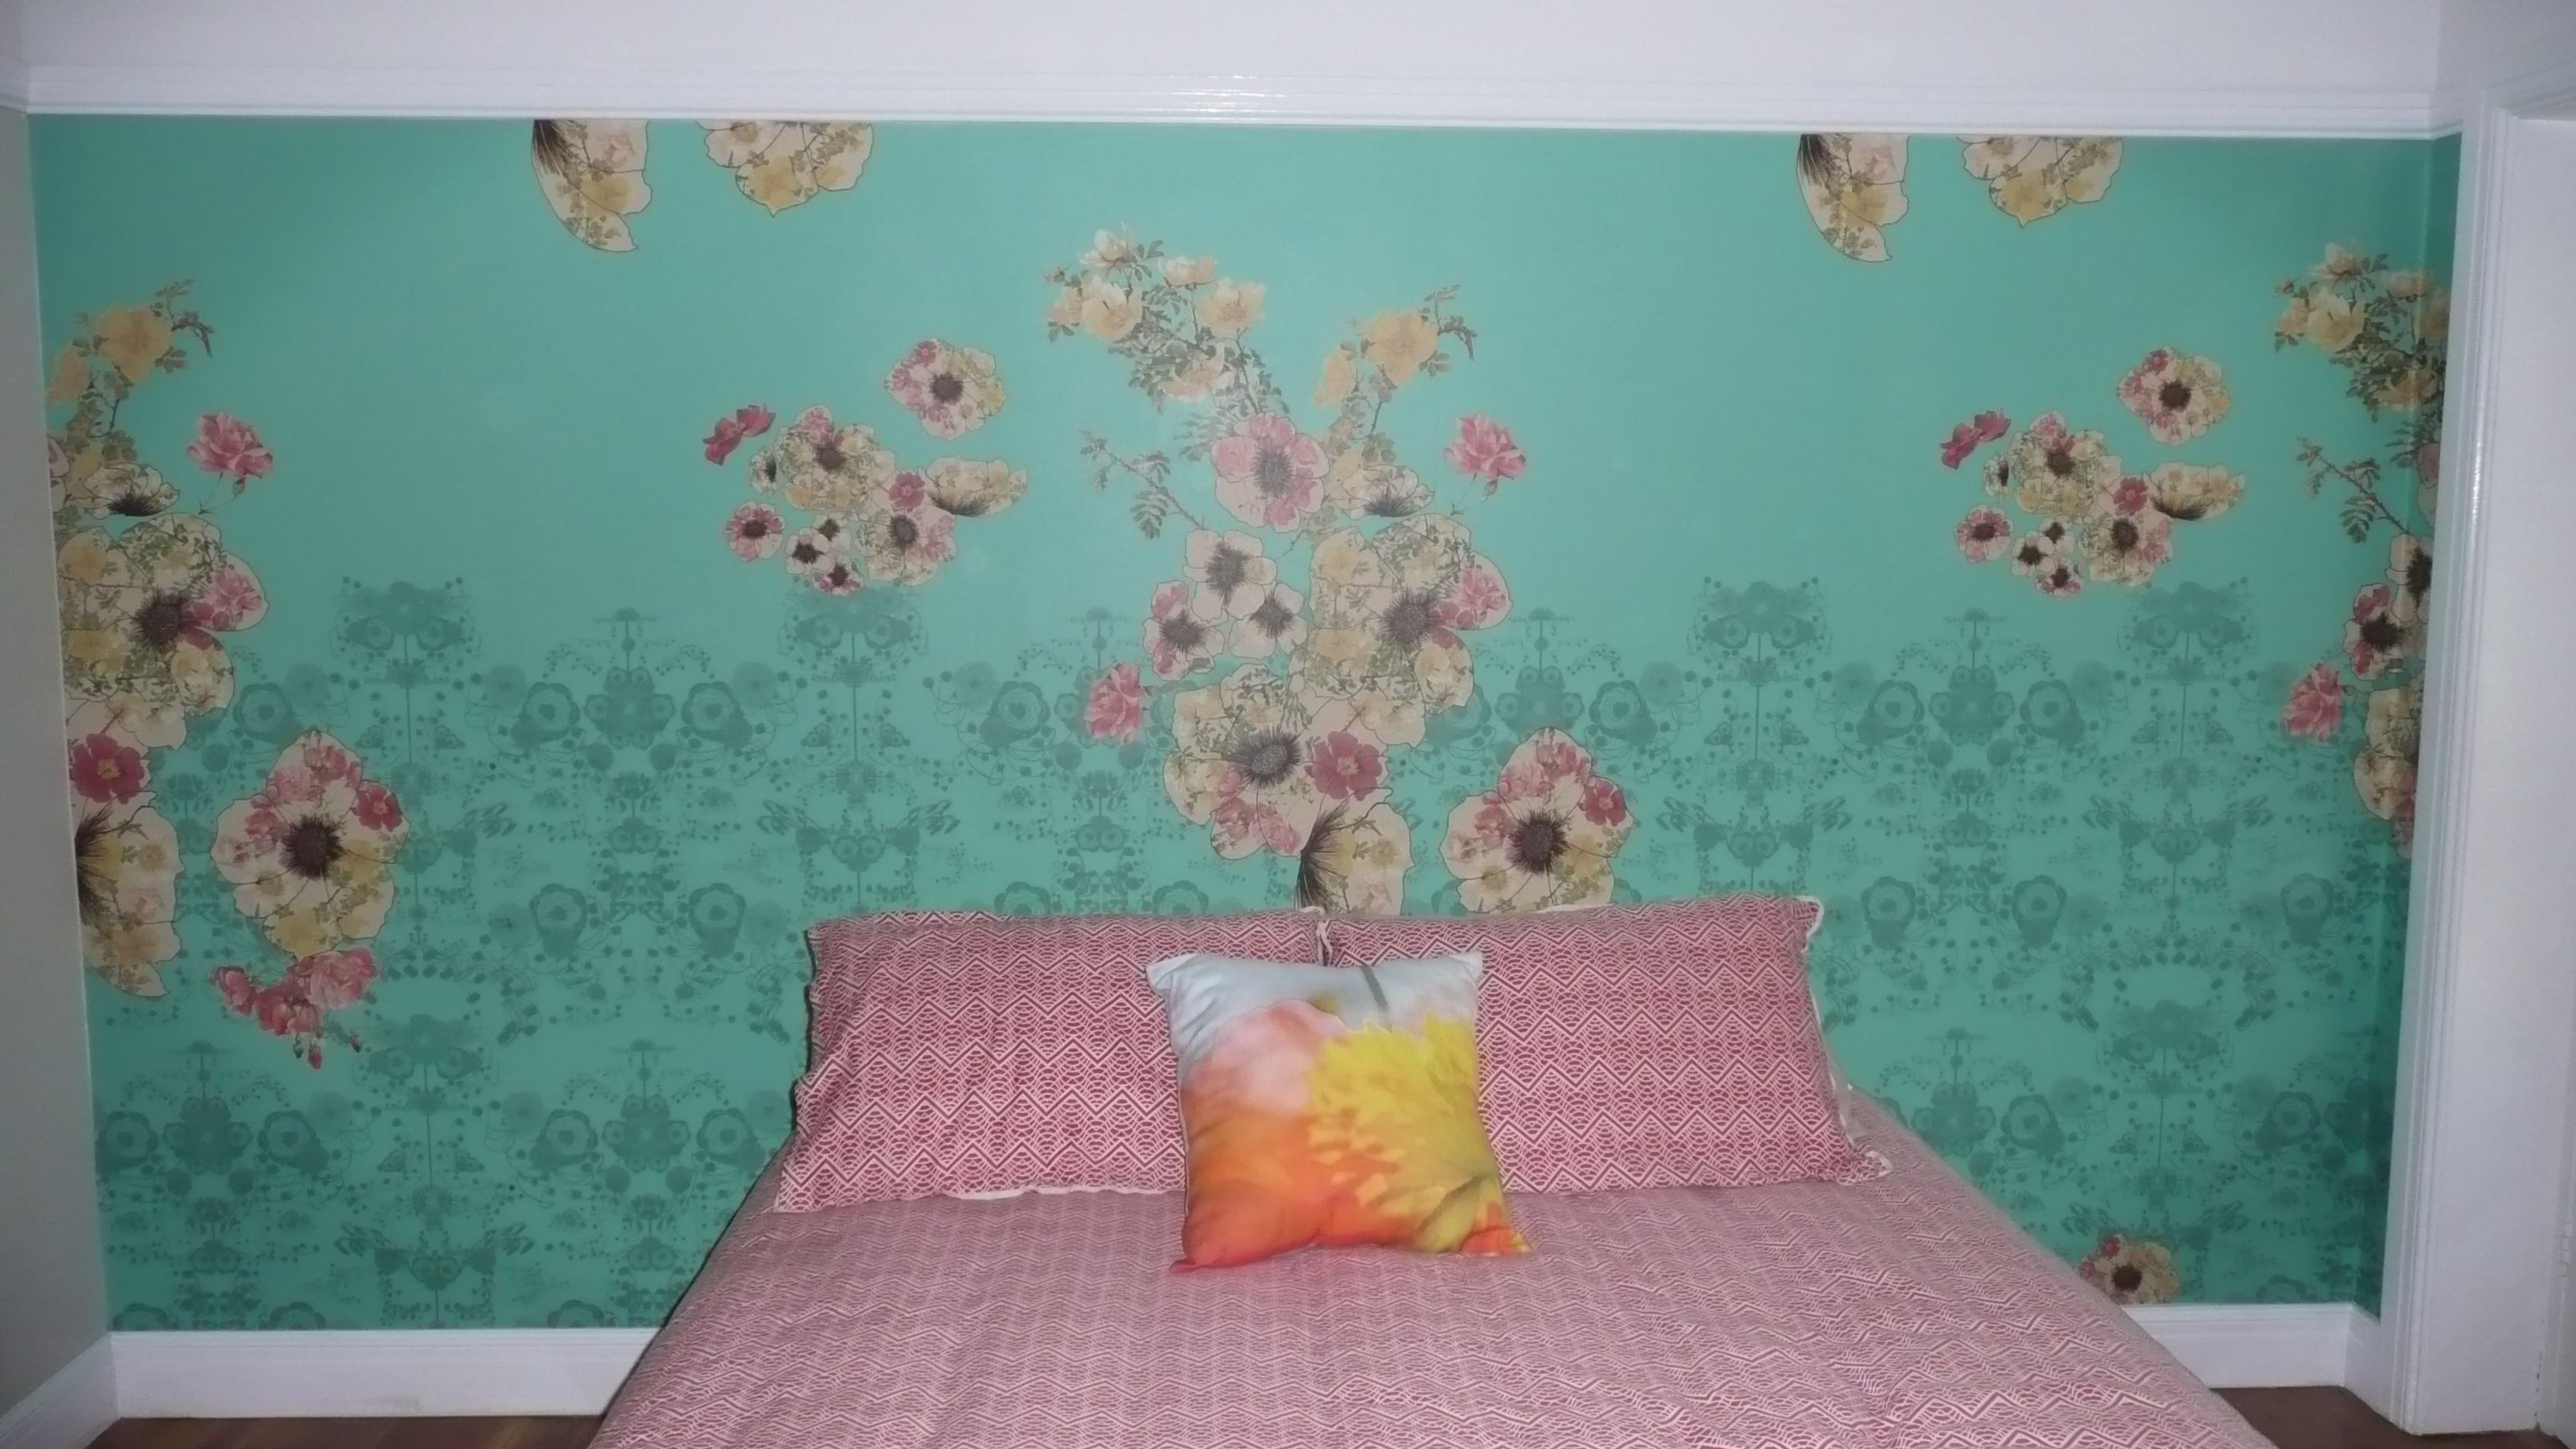 Another fantastic Flowers Wall Mural in a bedroom Wall